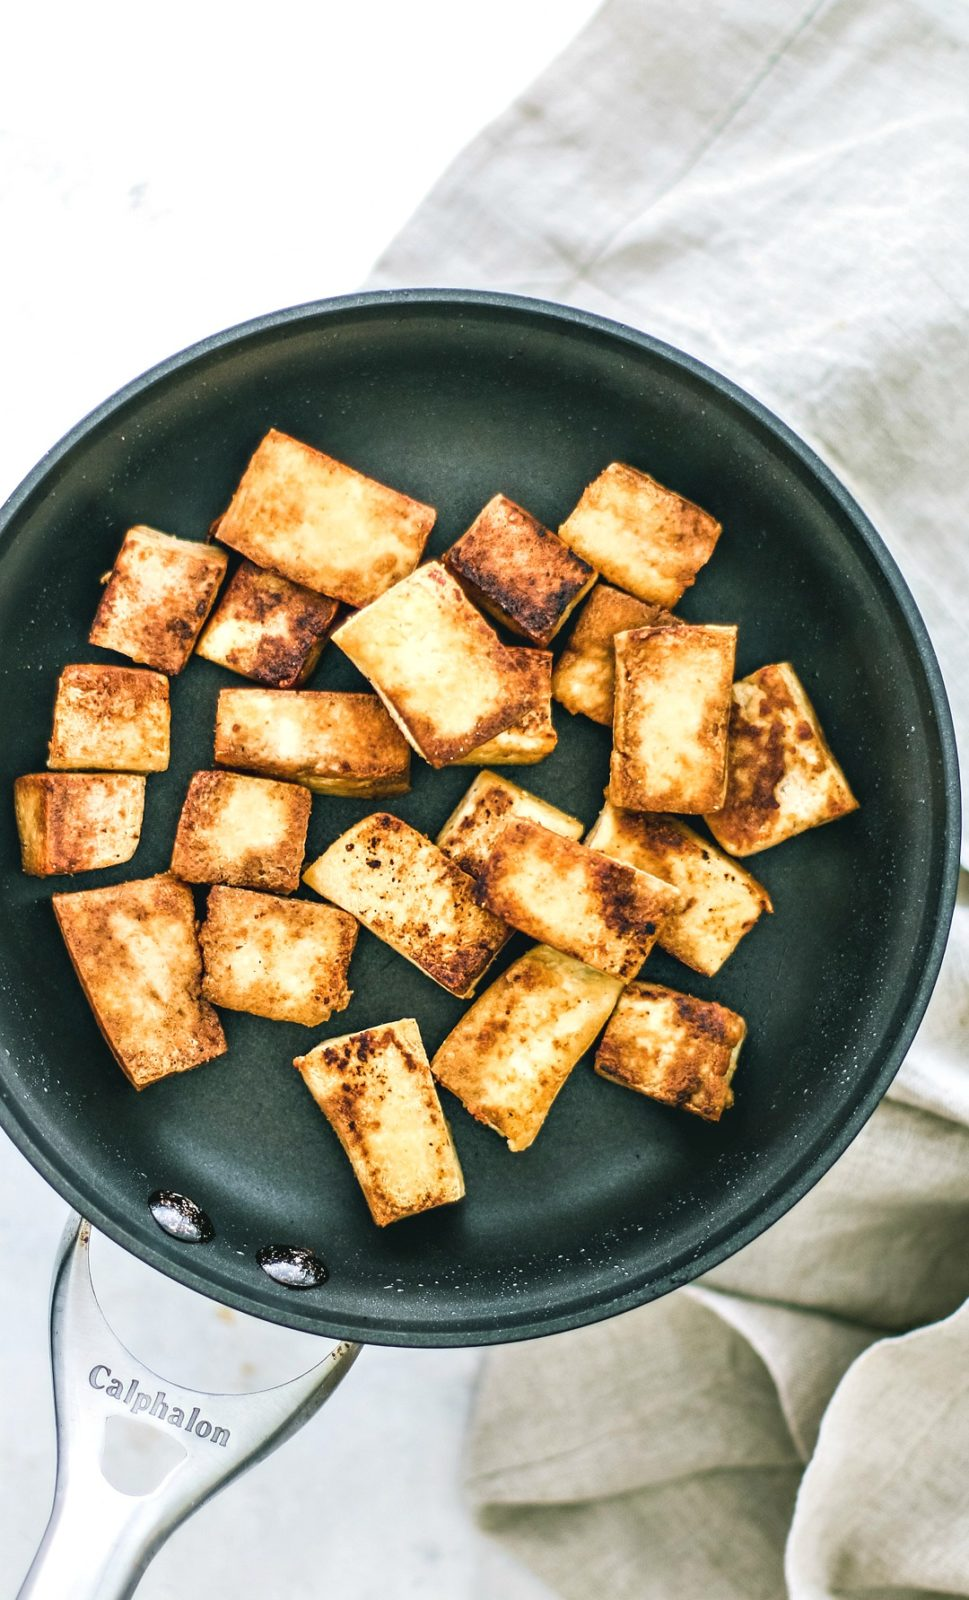 Pan of crispy tofu.